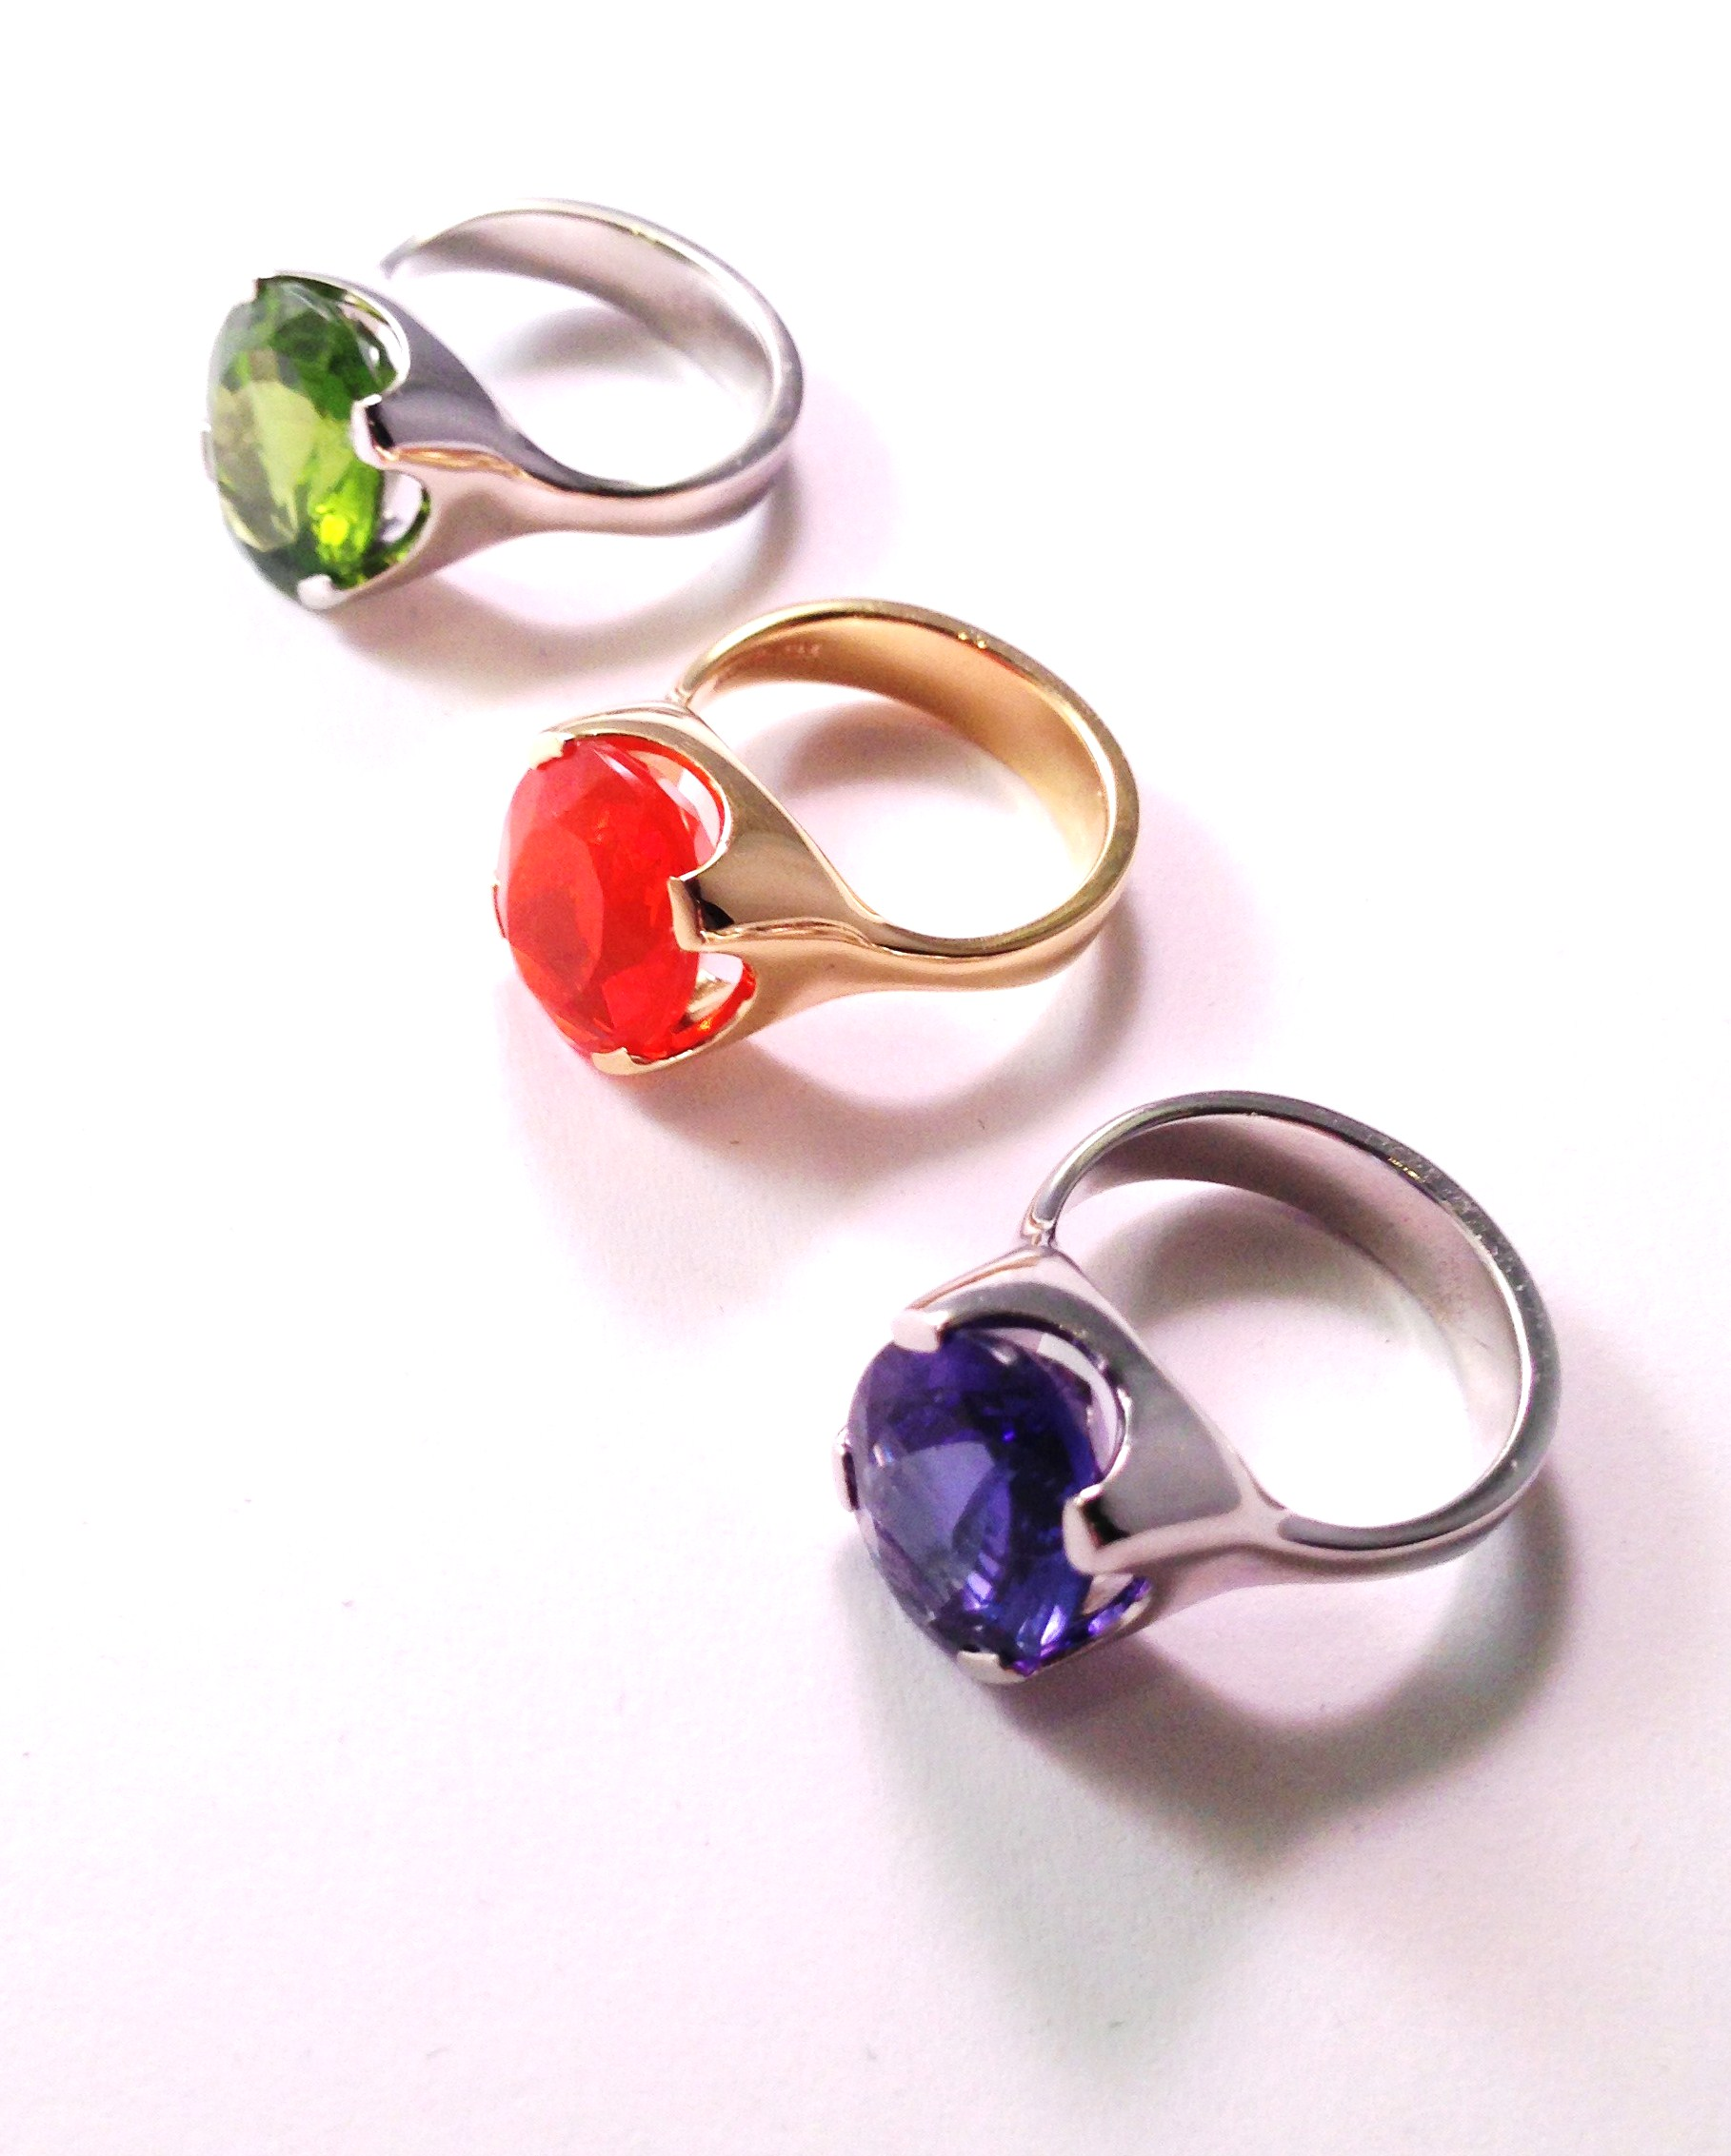 Tanzanite, Peridot, Fire Opal rings